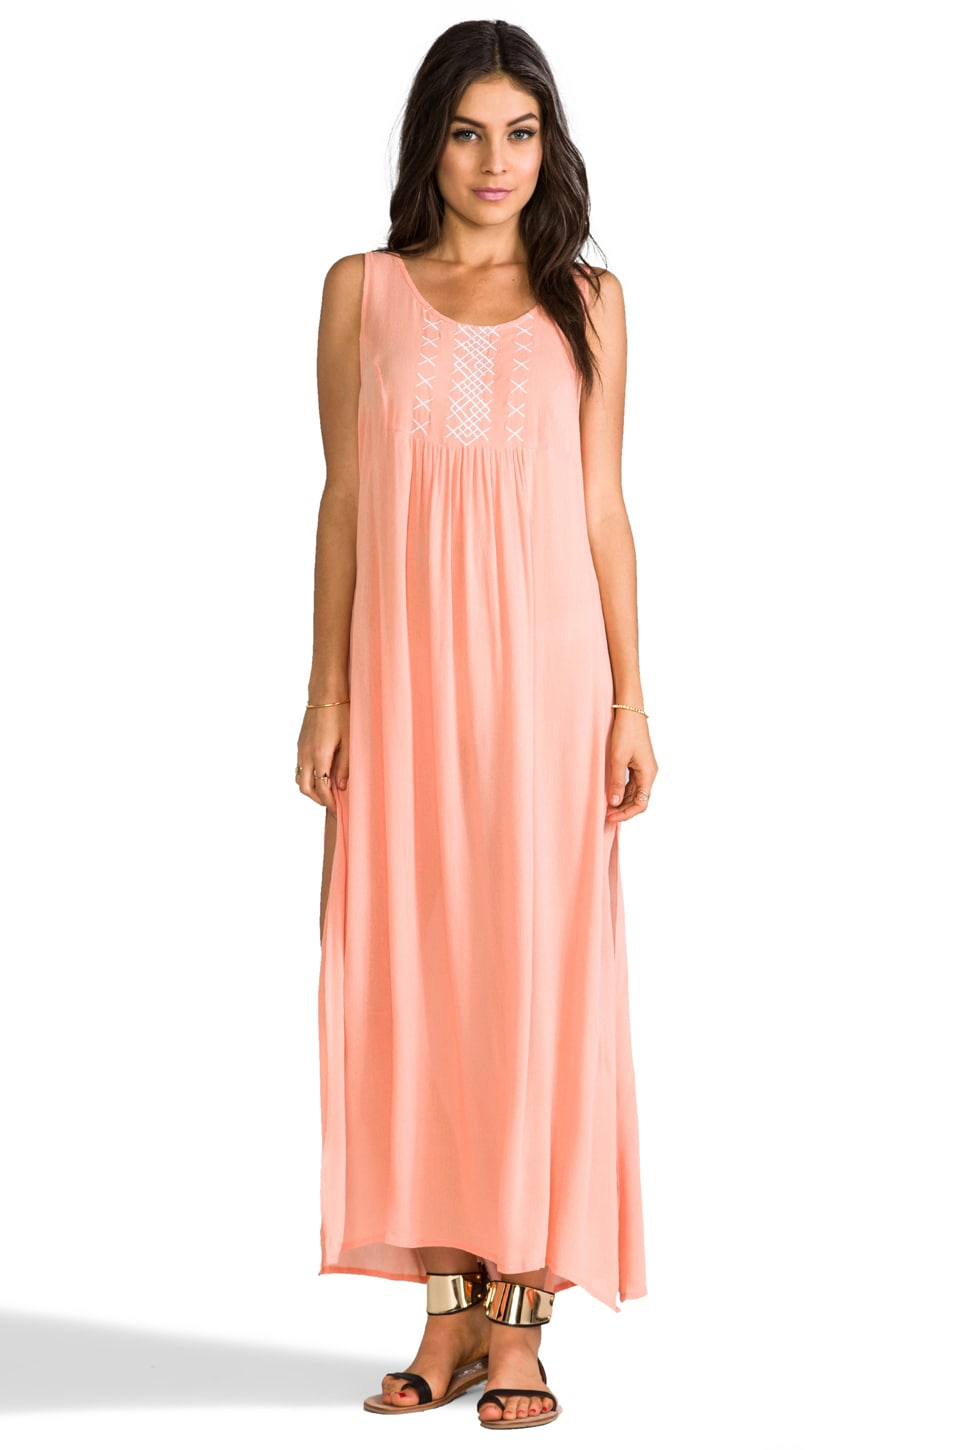 MINKPINK Cross My Heart Maxi Dress in Peach